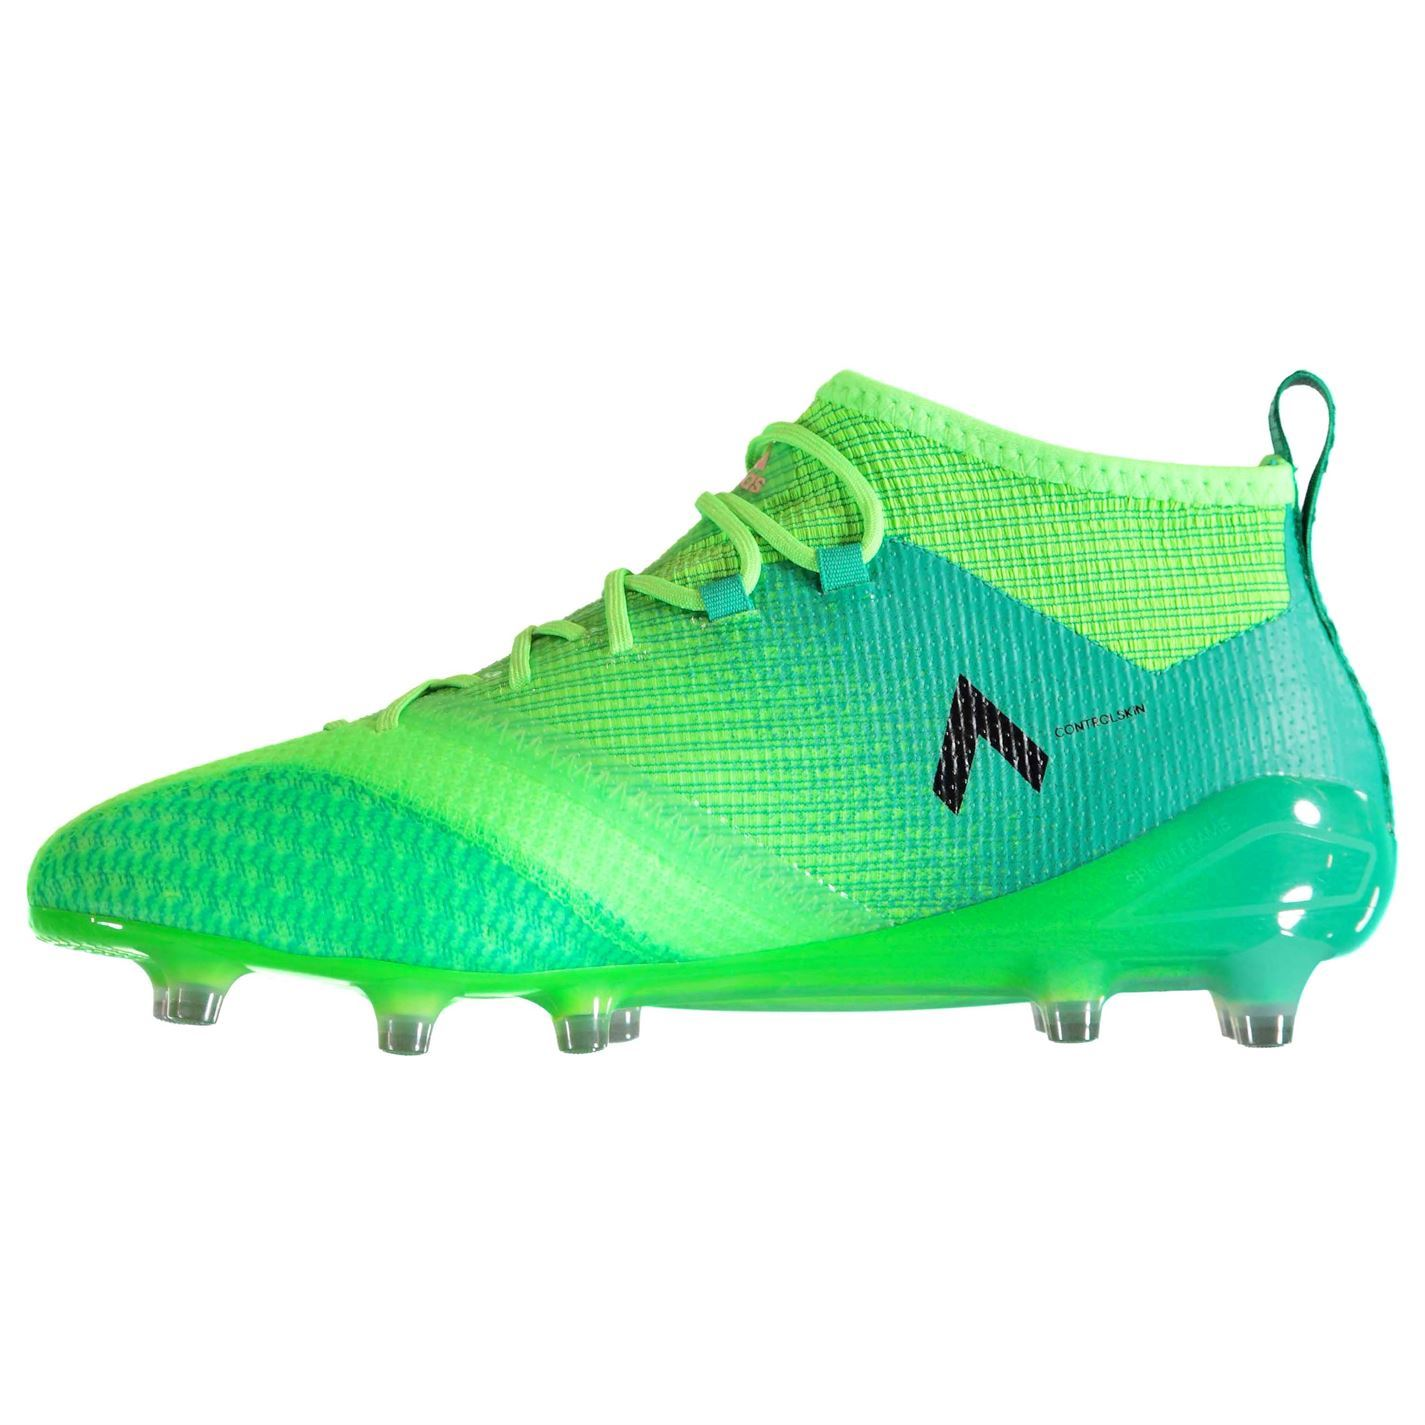 ... adidas Ace 17.1 Primeknit Firm Ground Football Boots Mens Green Soccer  Cleats dcdfd0e347623